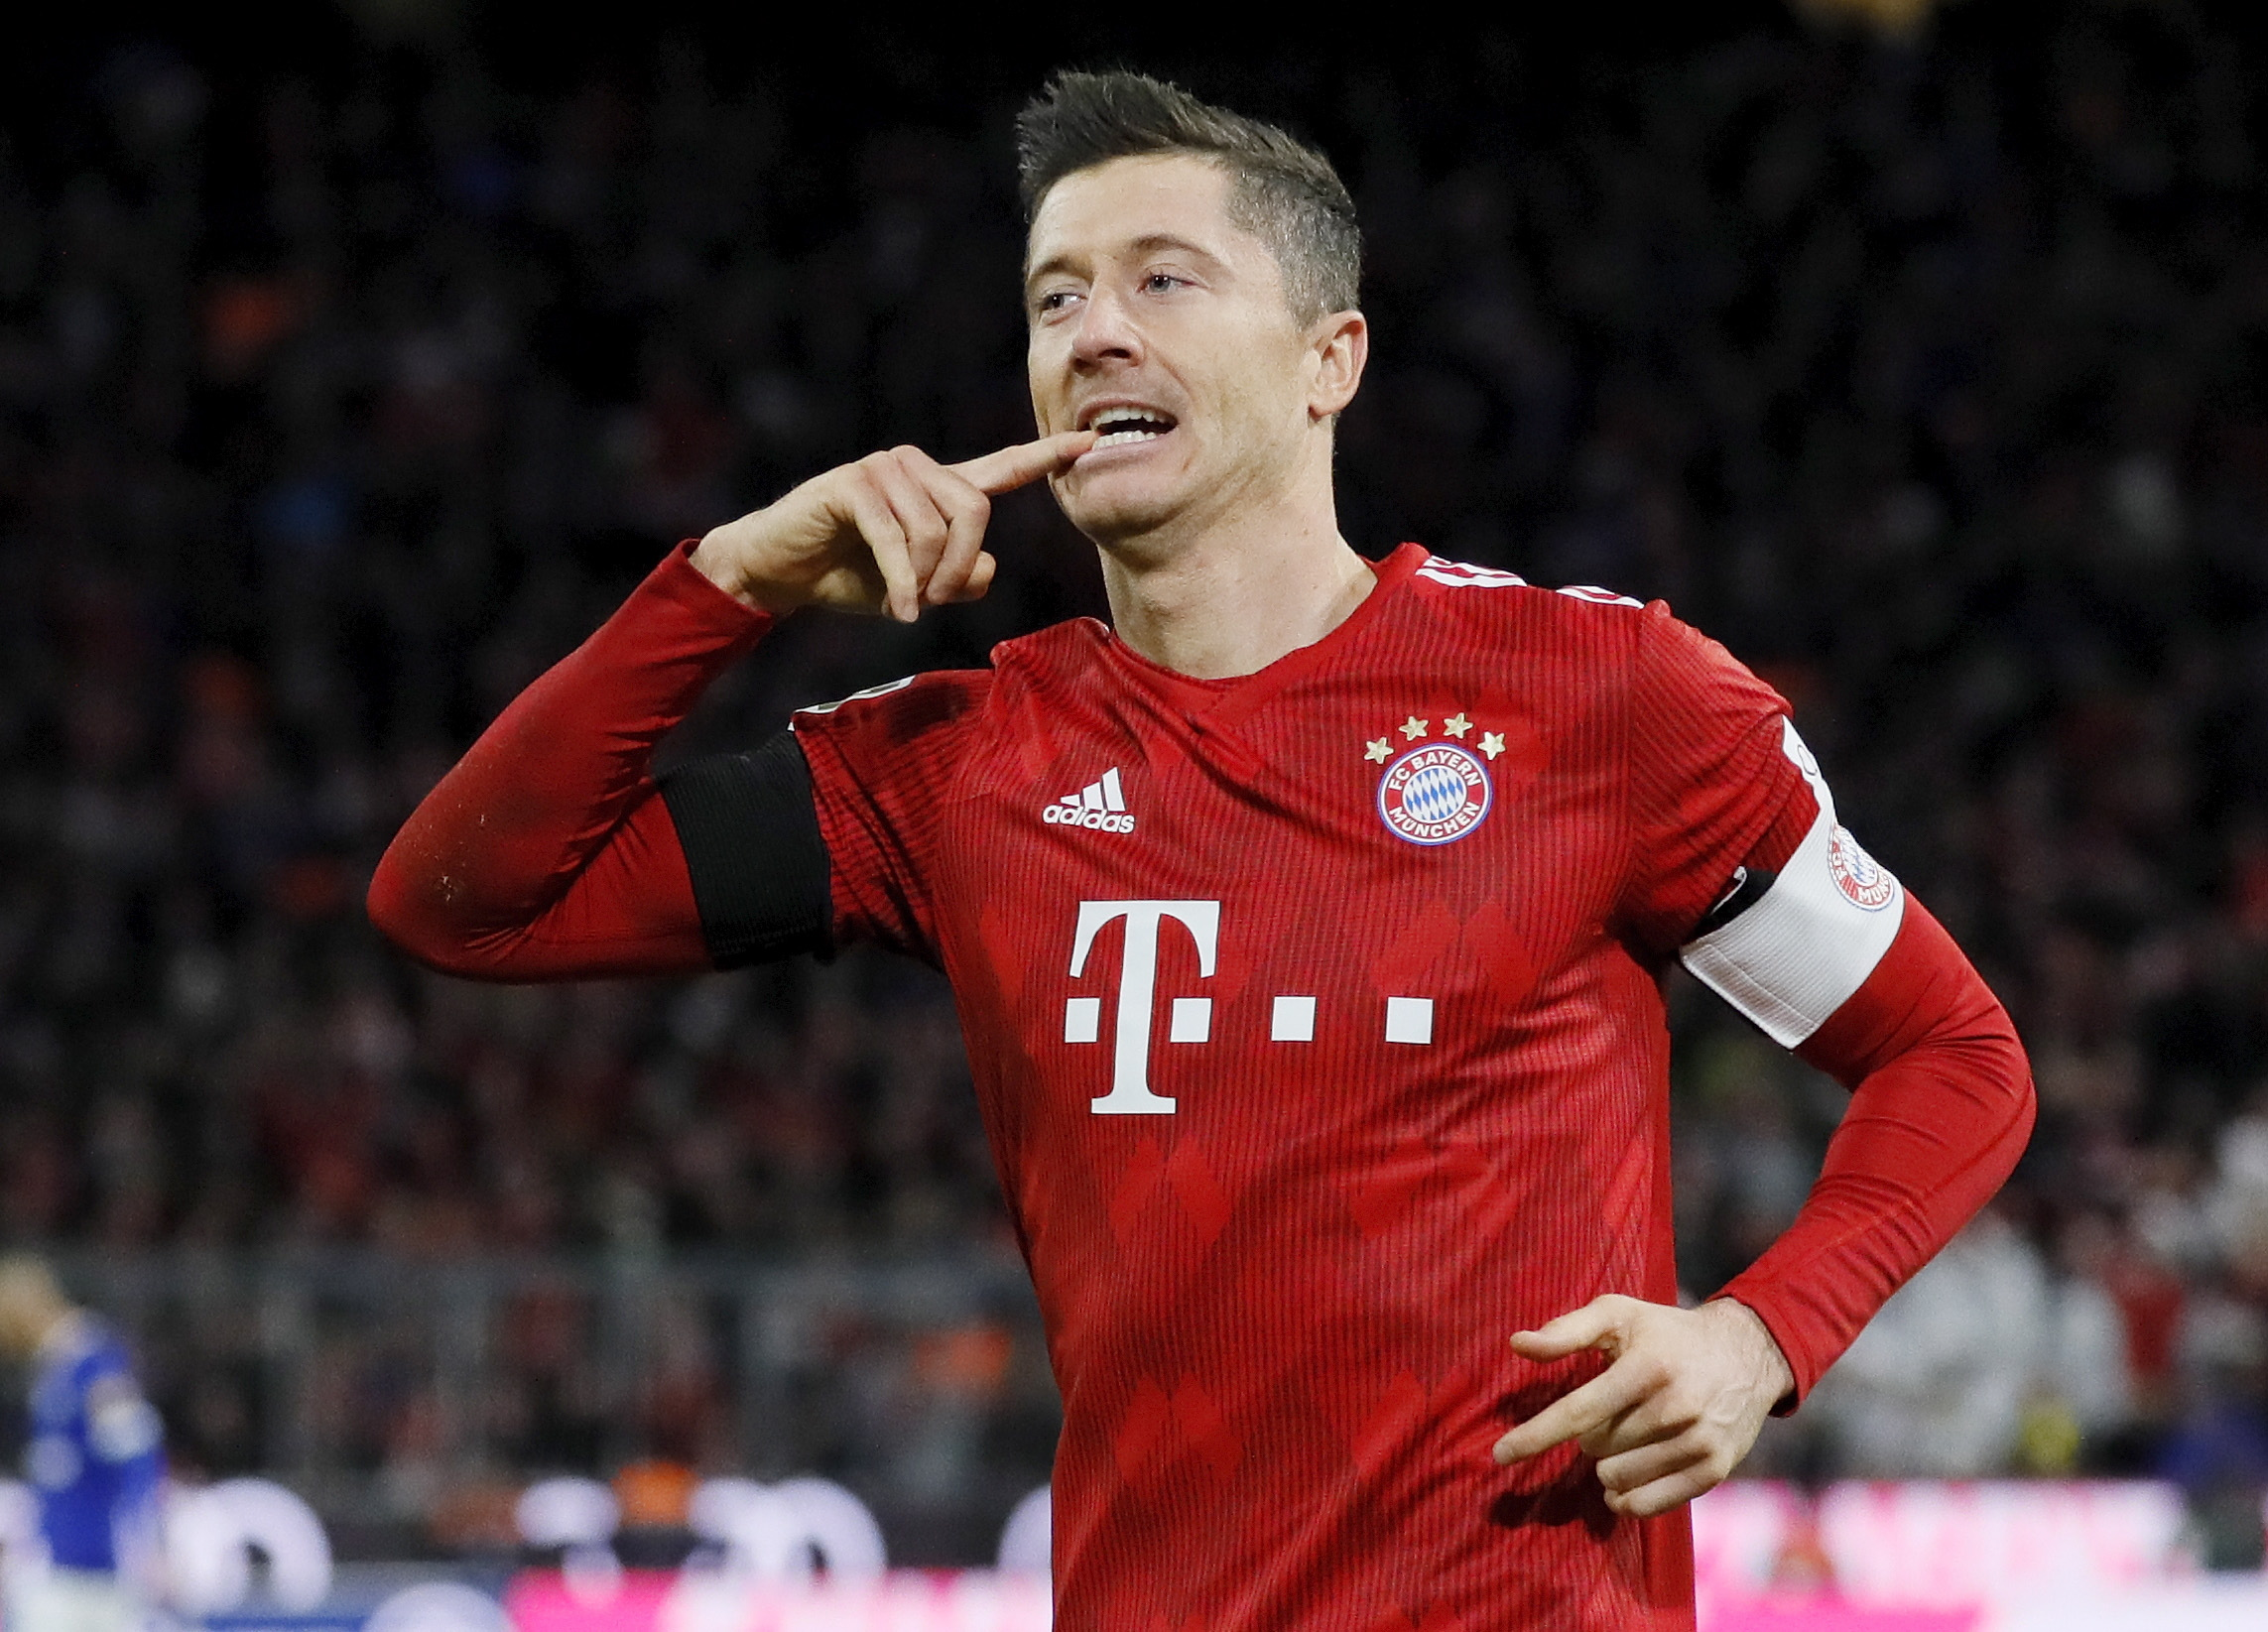 Futaa Bets: RB Leipzig vs Bayern in the German Cup final promises goals